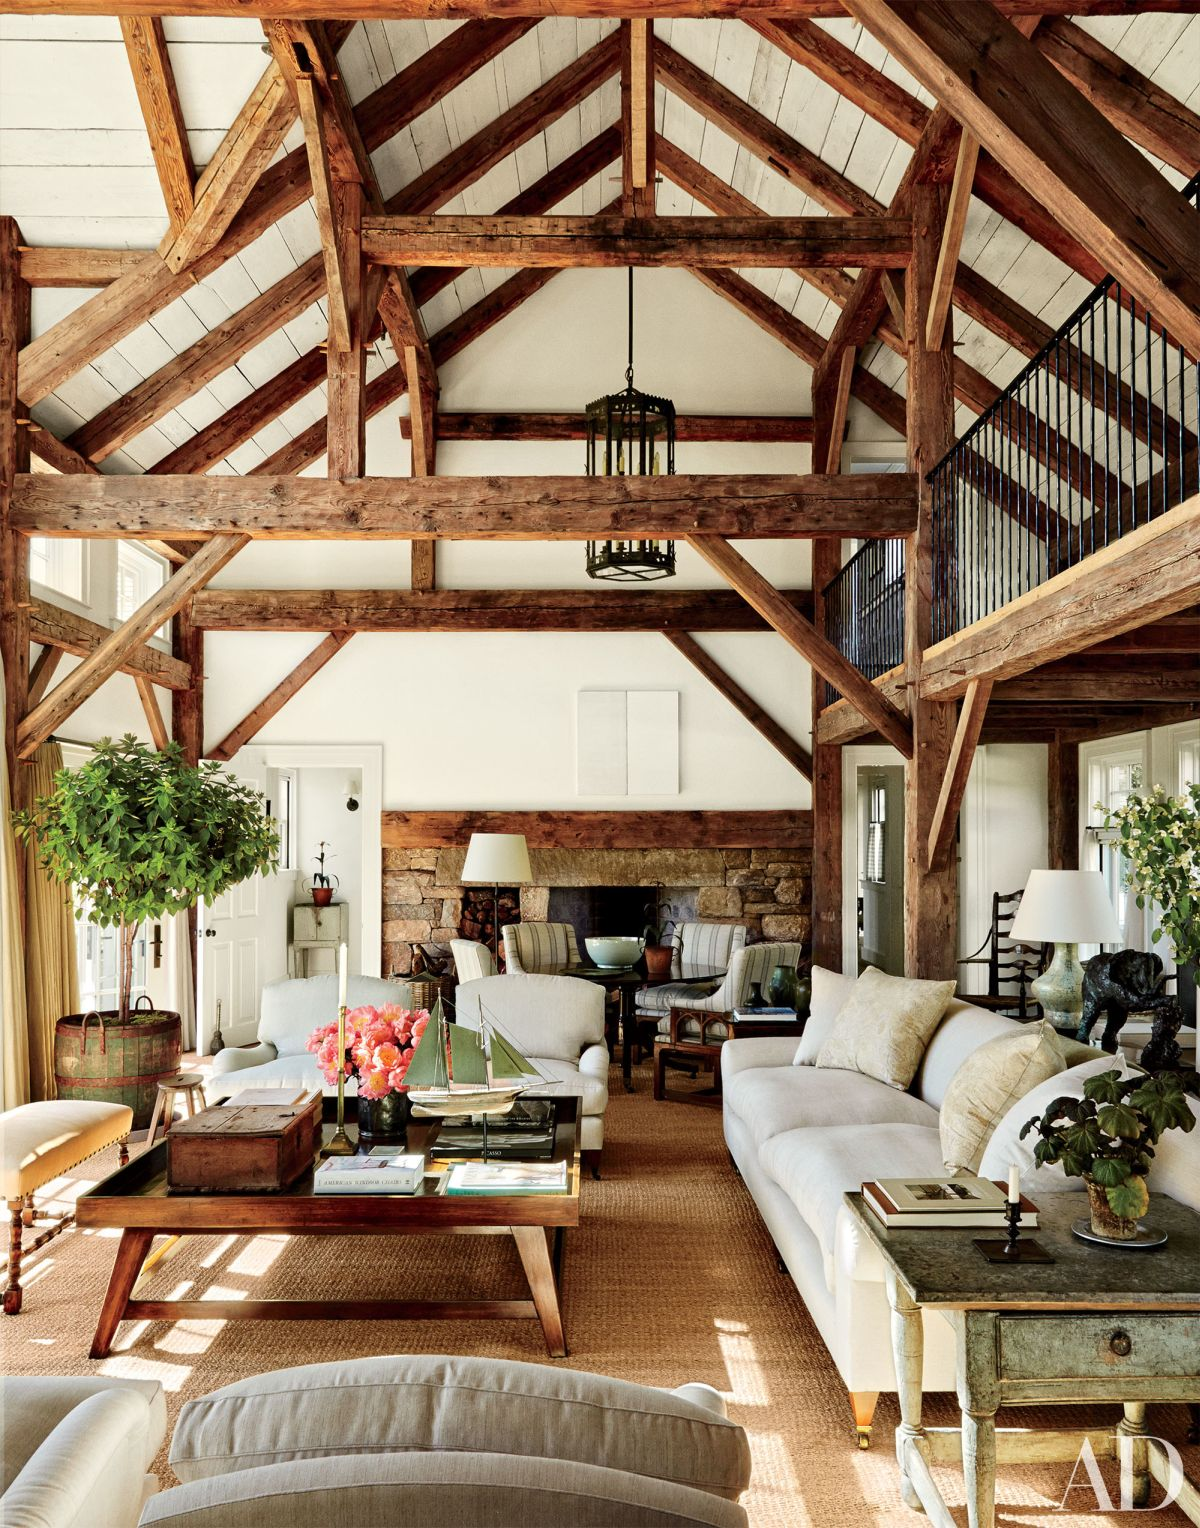 Wood Beam Ceiling Ideas ~ Expose your rusticity with exposed beams